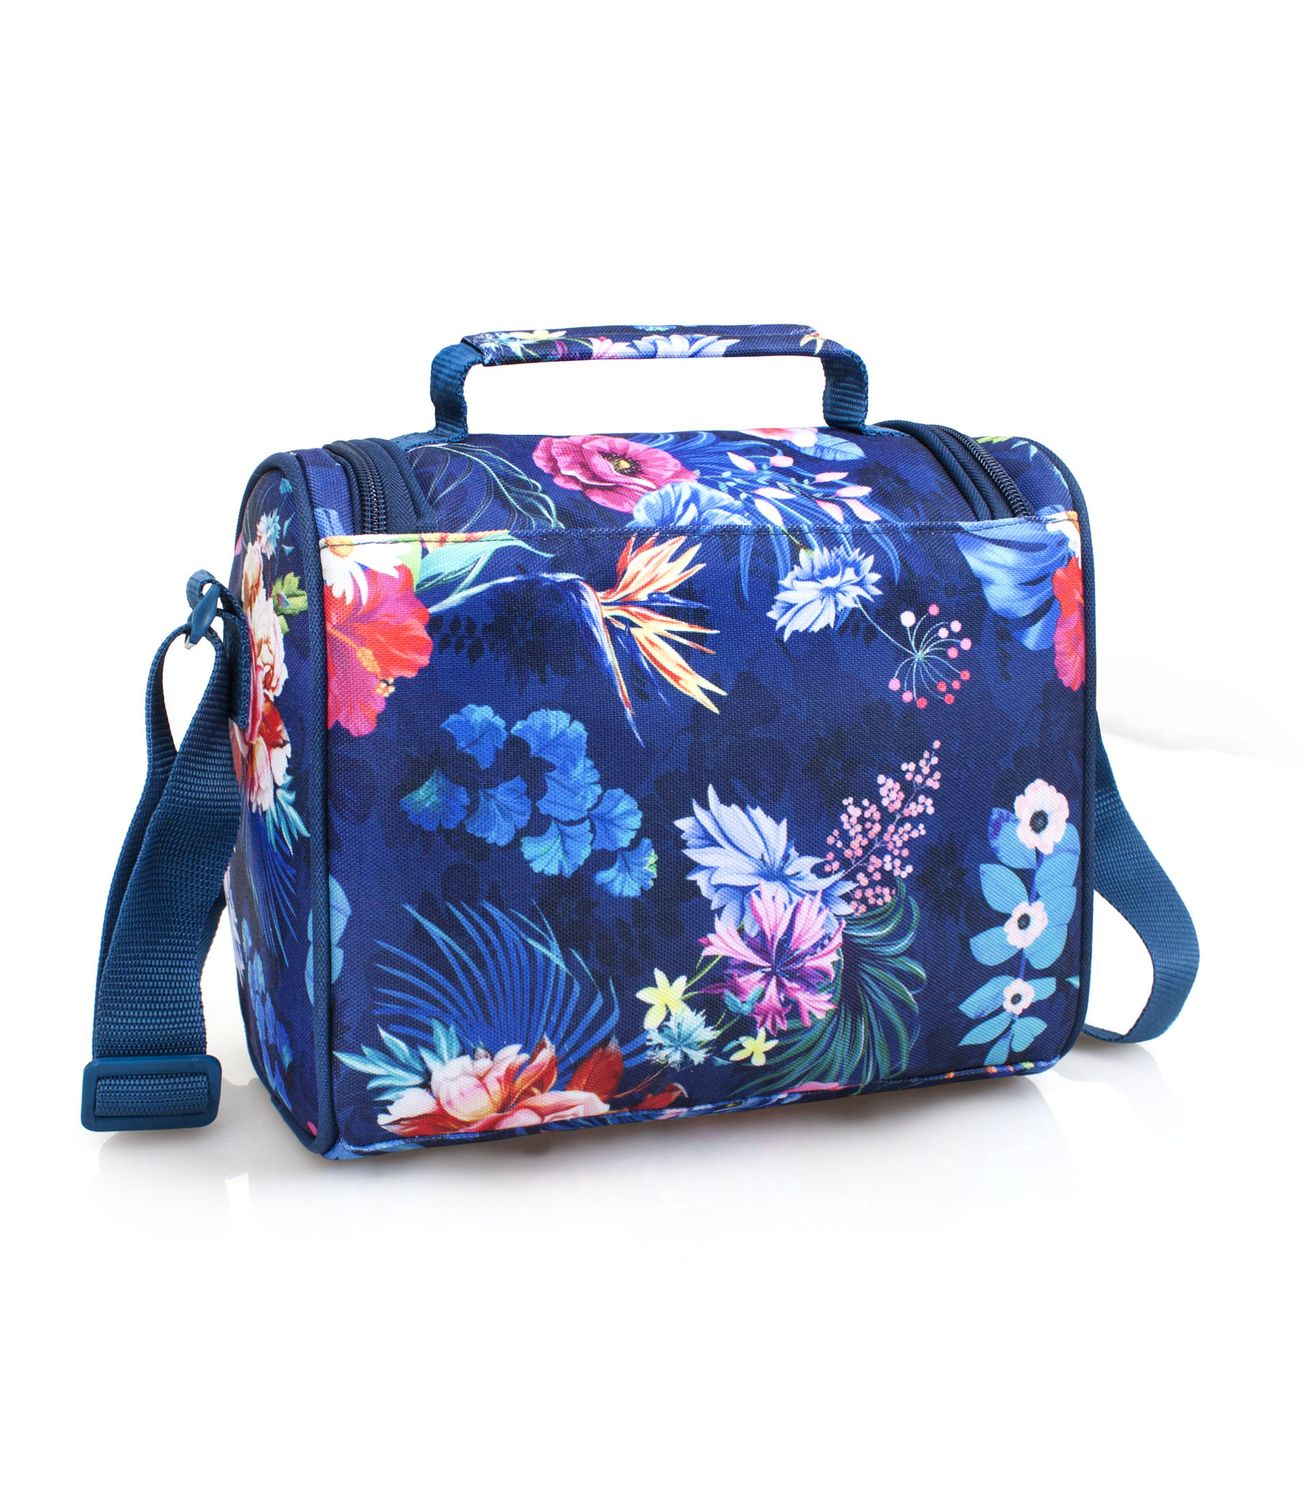 EL CHARRO Cooler Lunch Bag Blue FLOWERS – image 2